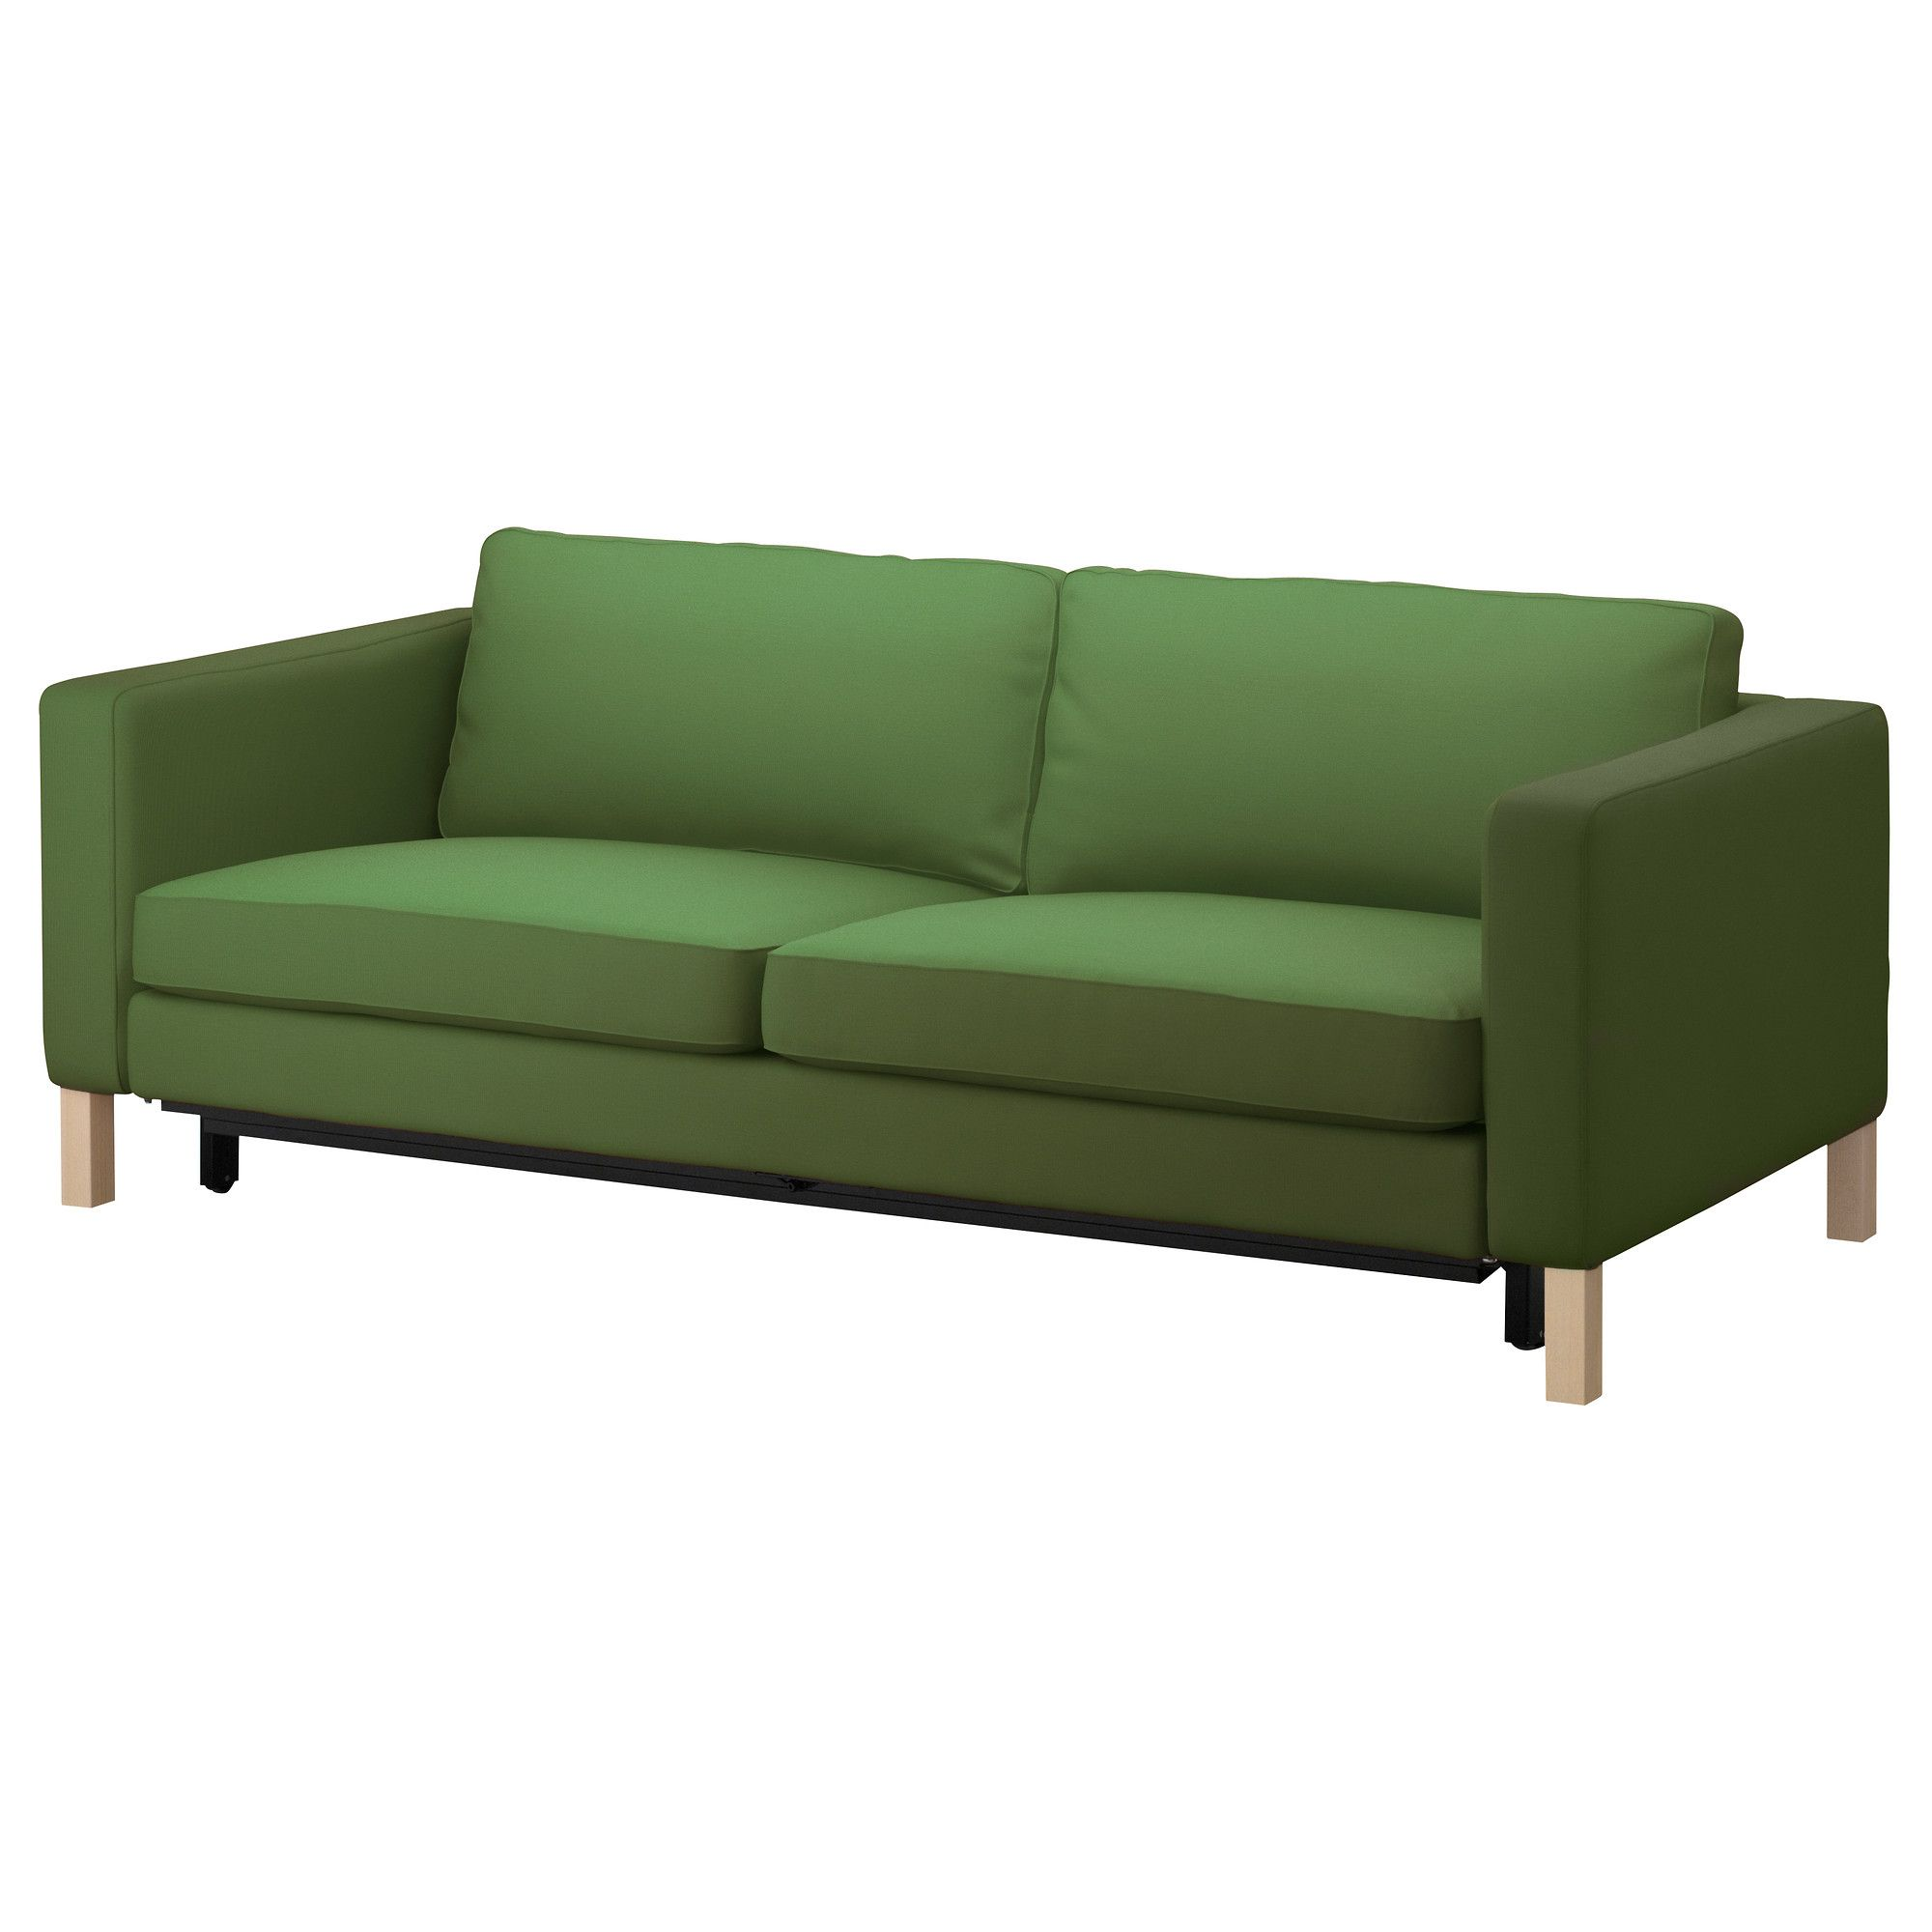 Fabulous Us Furniture And Home Furnishings Sofa Bed Green Pink Gmtry Best Dining Table And Chair Ideas Images Gmtryco